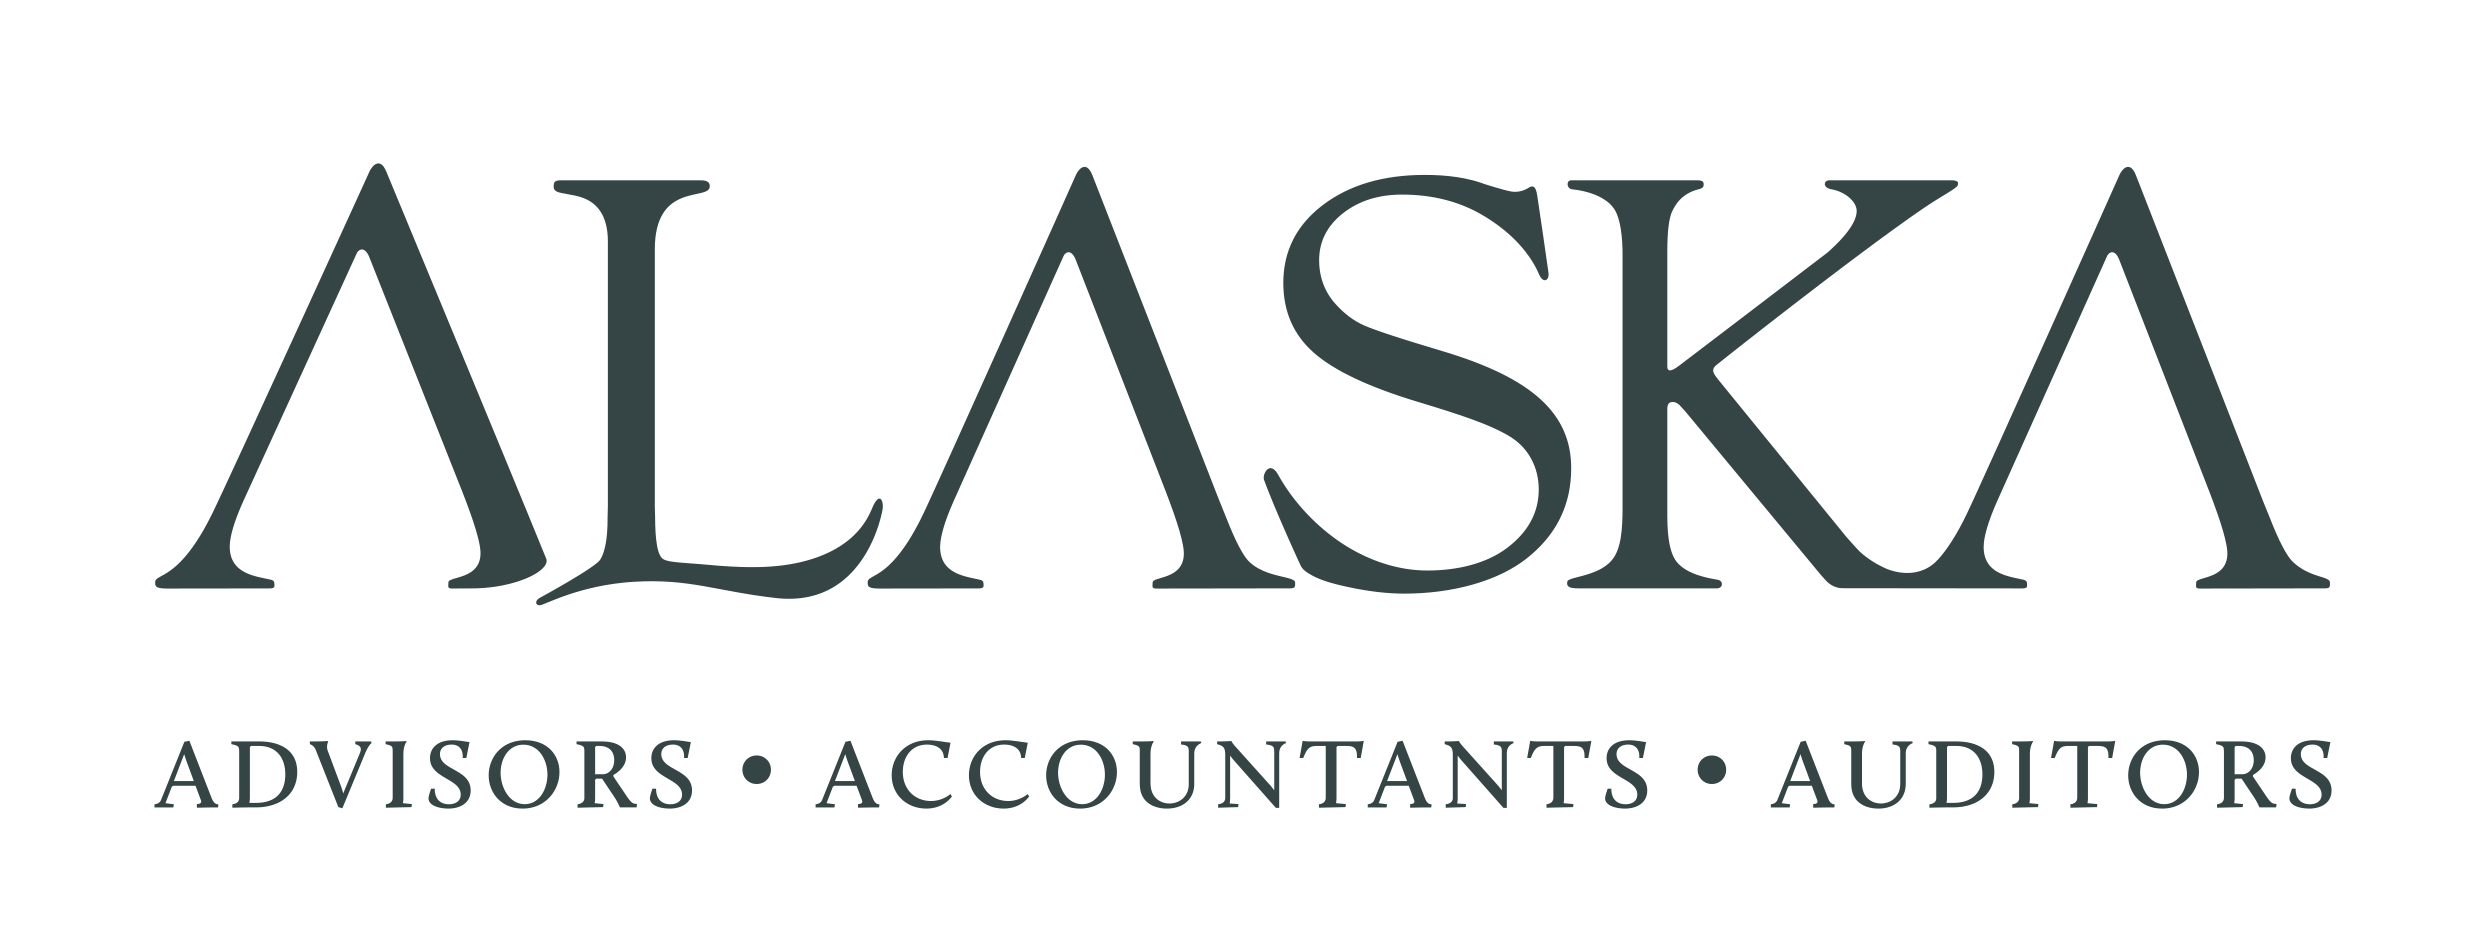 Alaska Tagline 2015 Outline